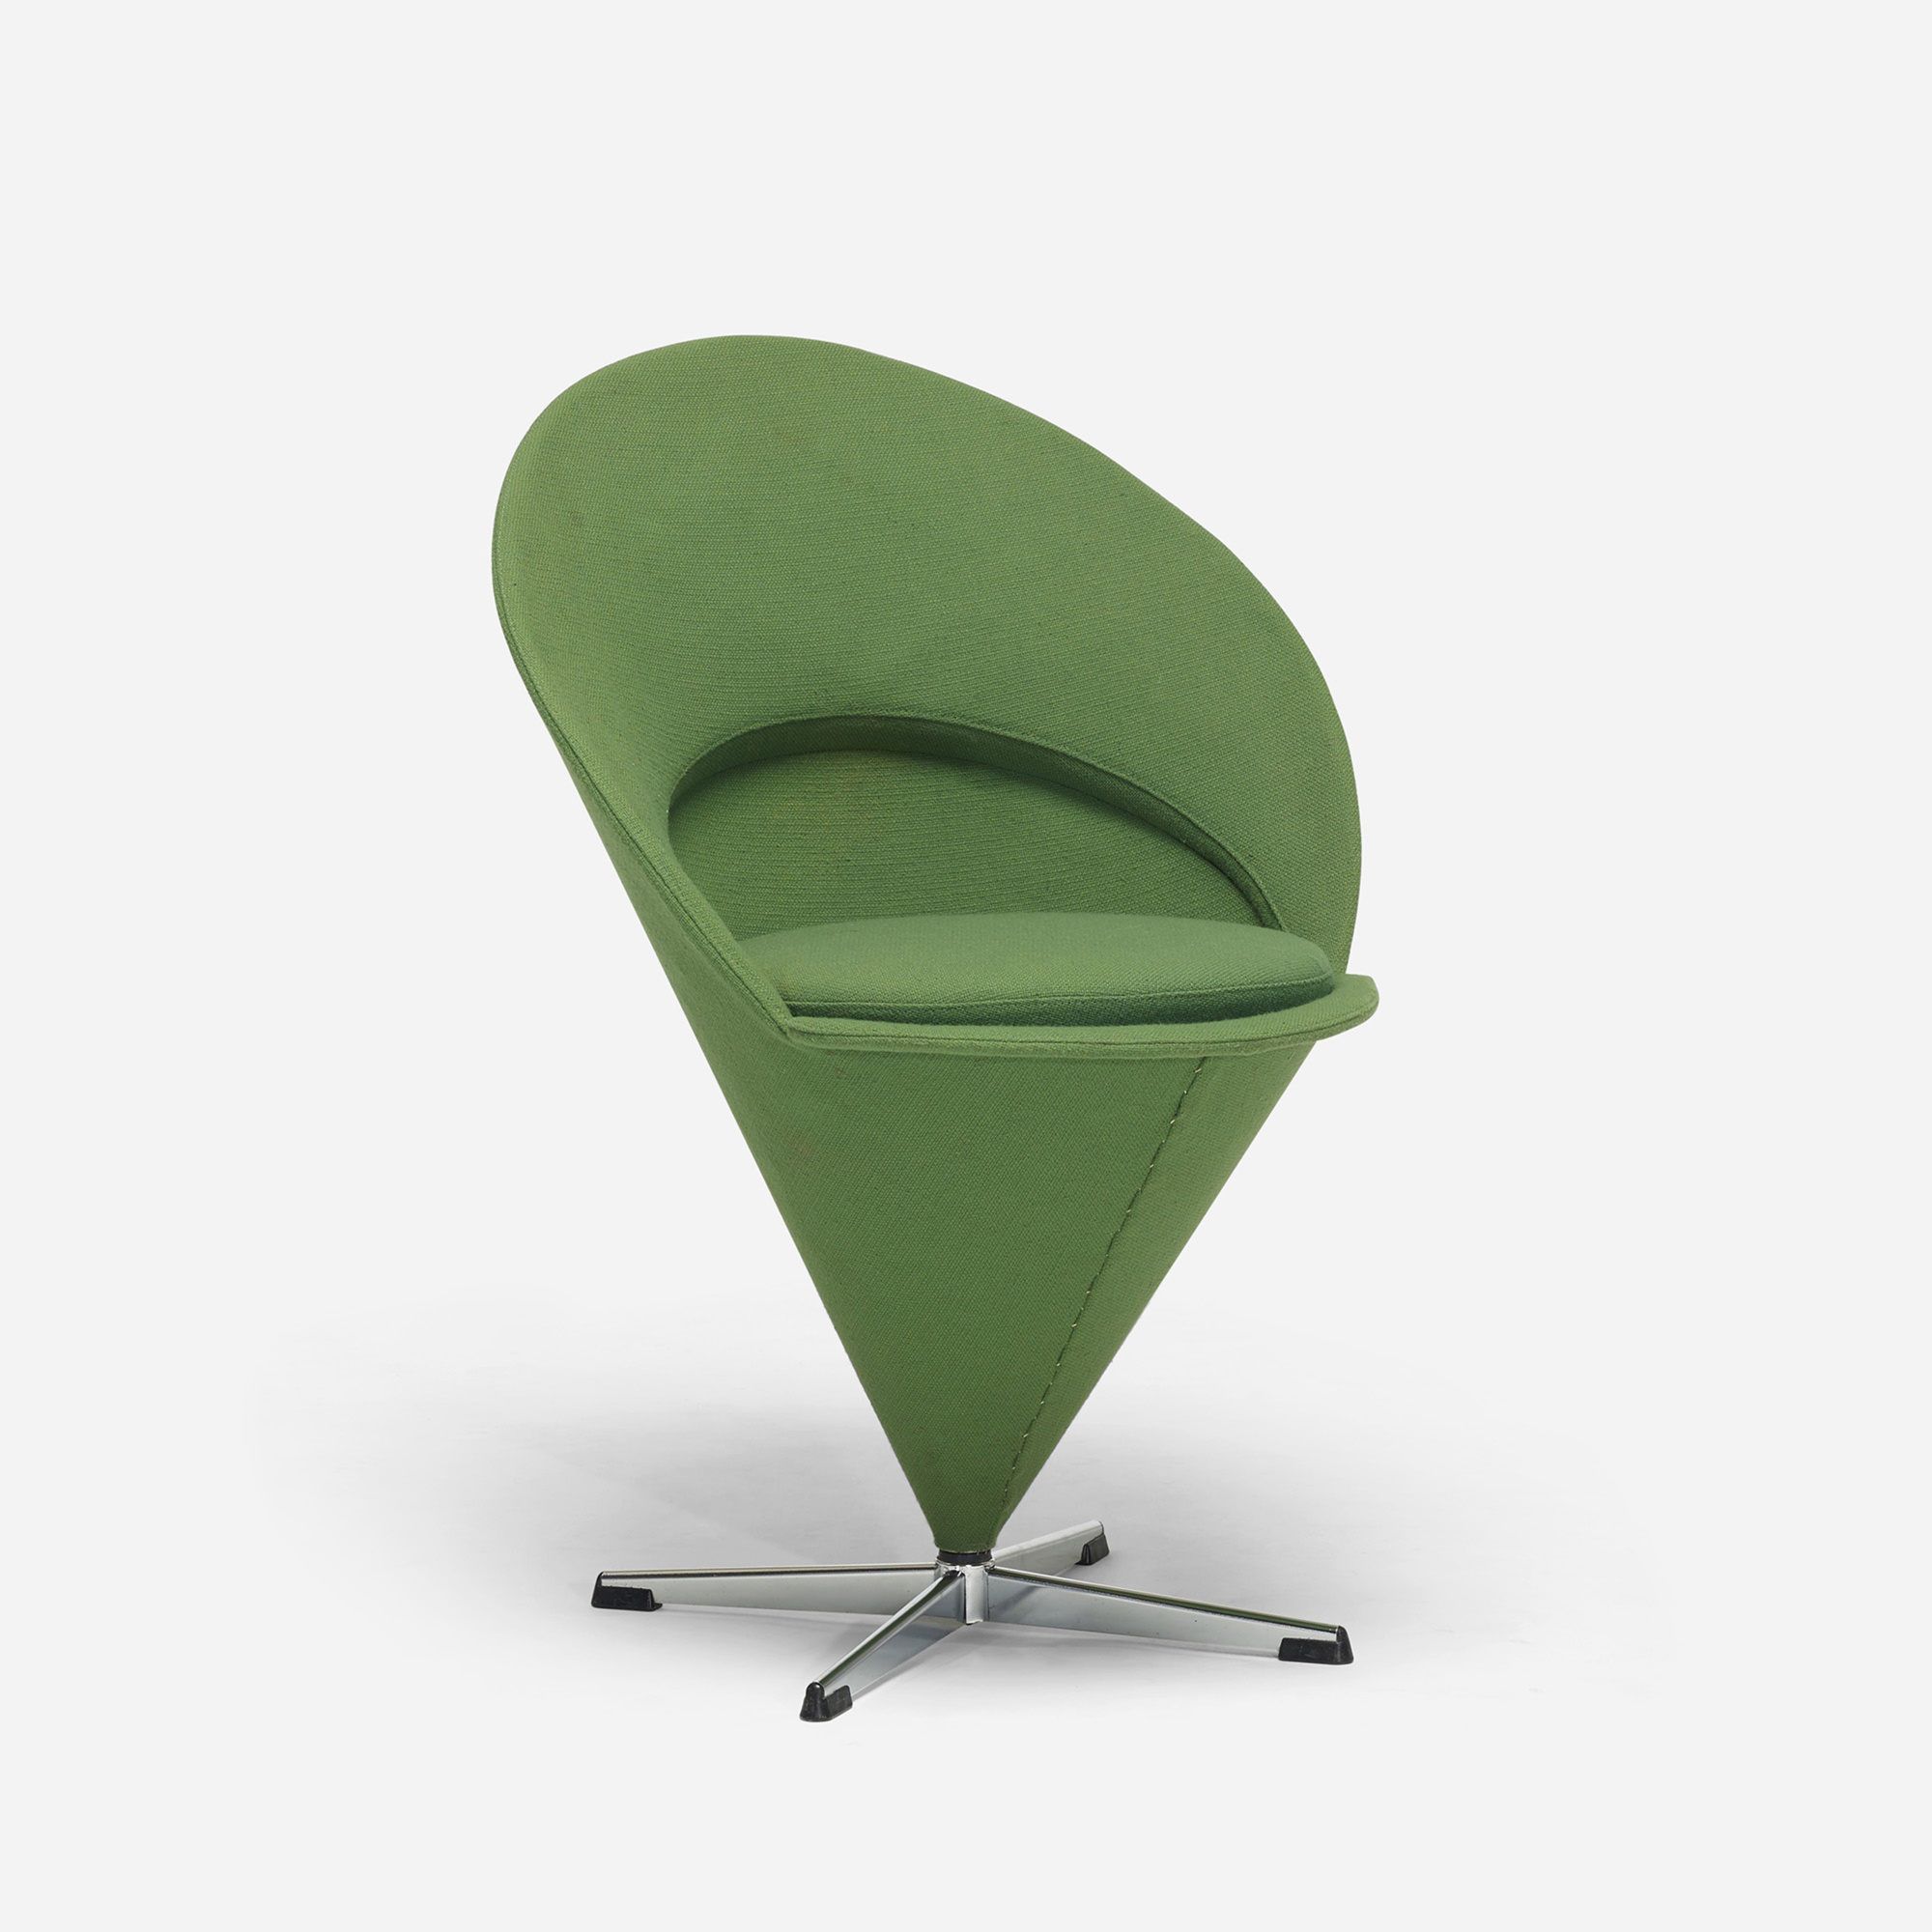 649: Verner Panton / Cone chair (2 of 4)